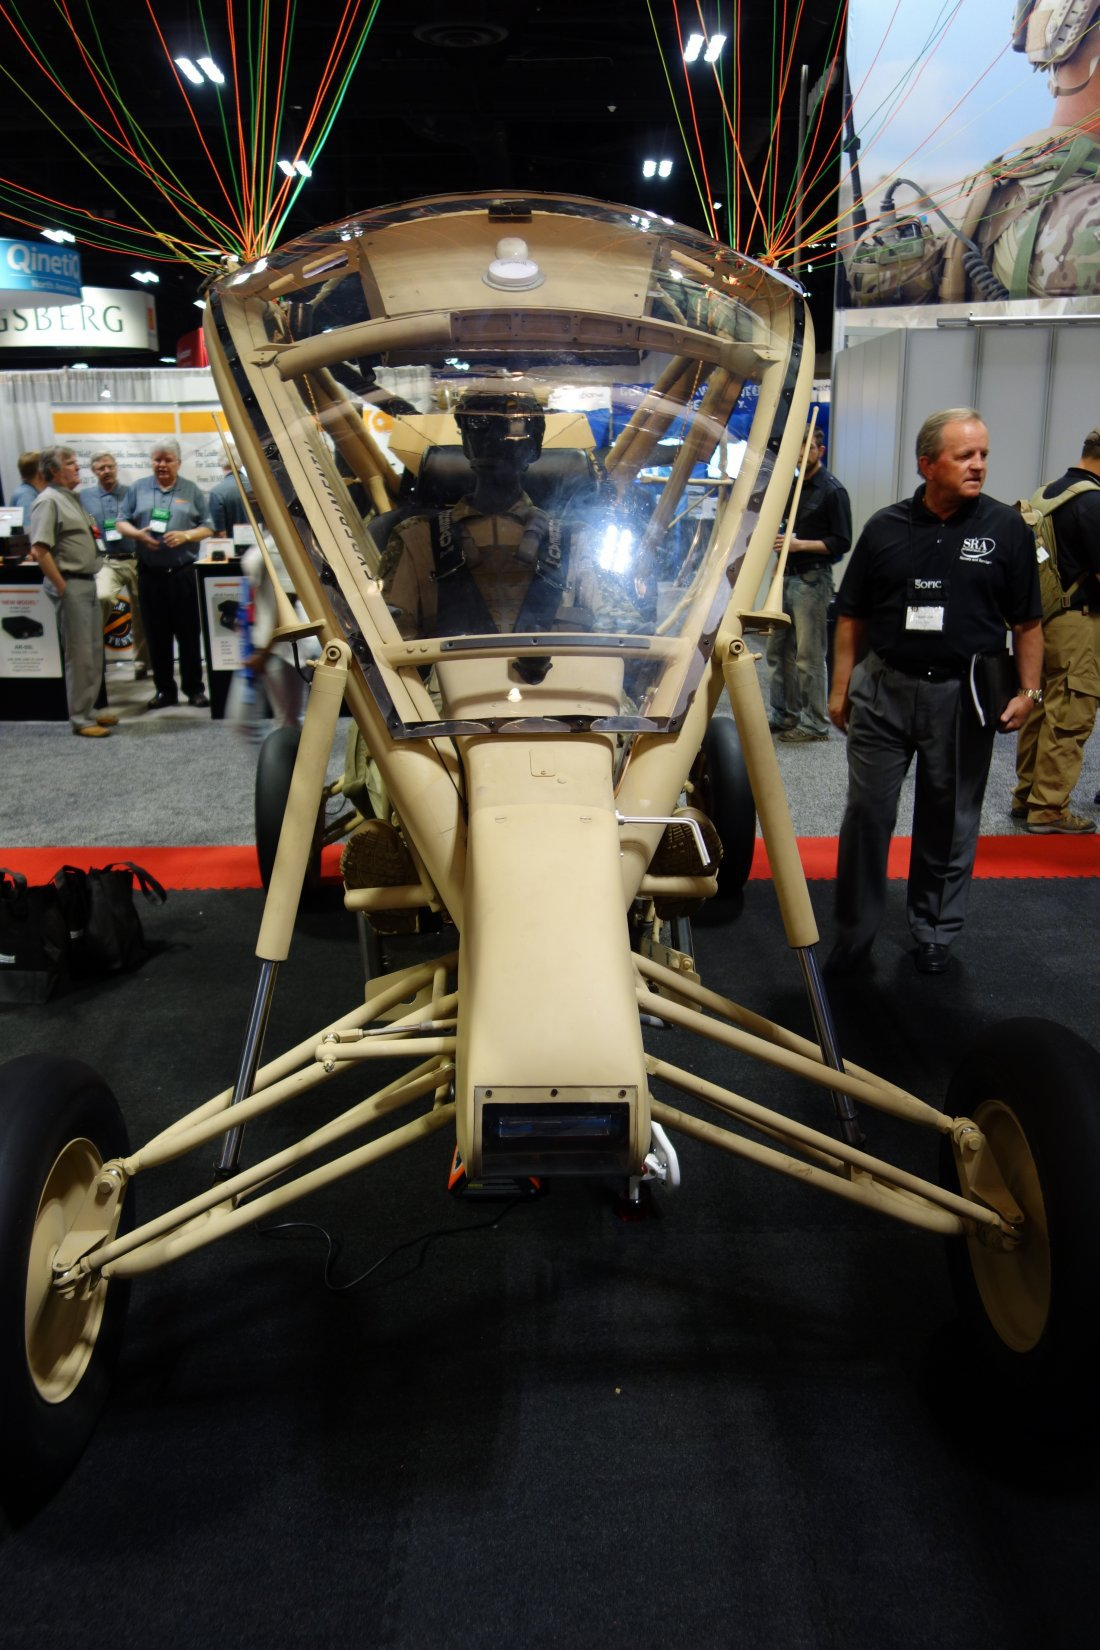 S&S Precison Stalker MPTV (Multi-Purpose Tactical Vehicle) Powered Parafoil Combat Assault Vehicle Aircraft/Ground Vehicle for Military Special Operations Forces (SOF): Up to 156 MPH on Land, and 61 Knots in the Air! (Photos!)